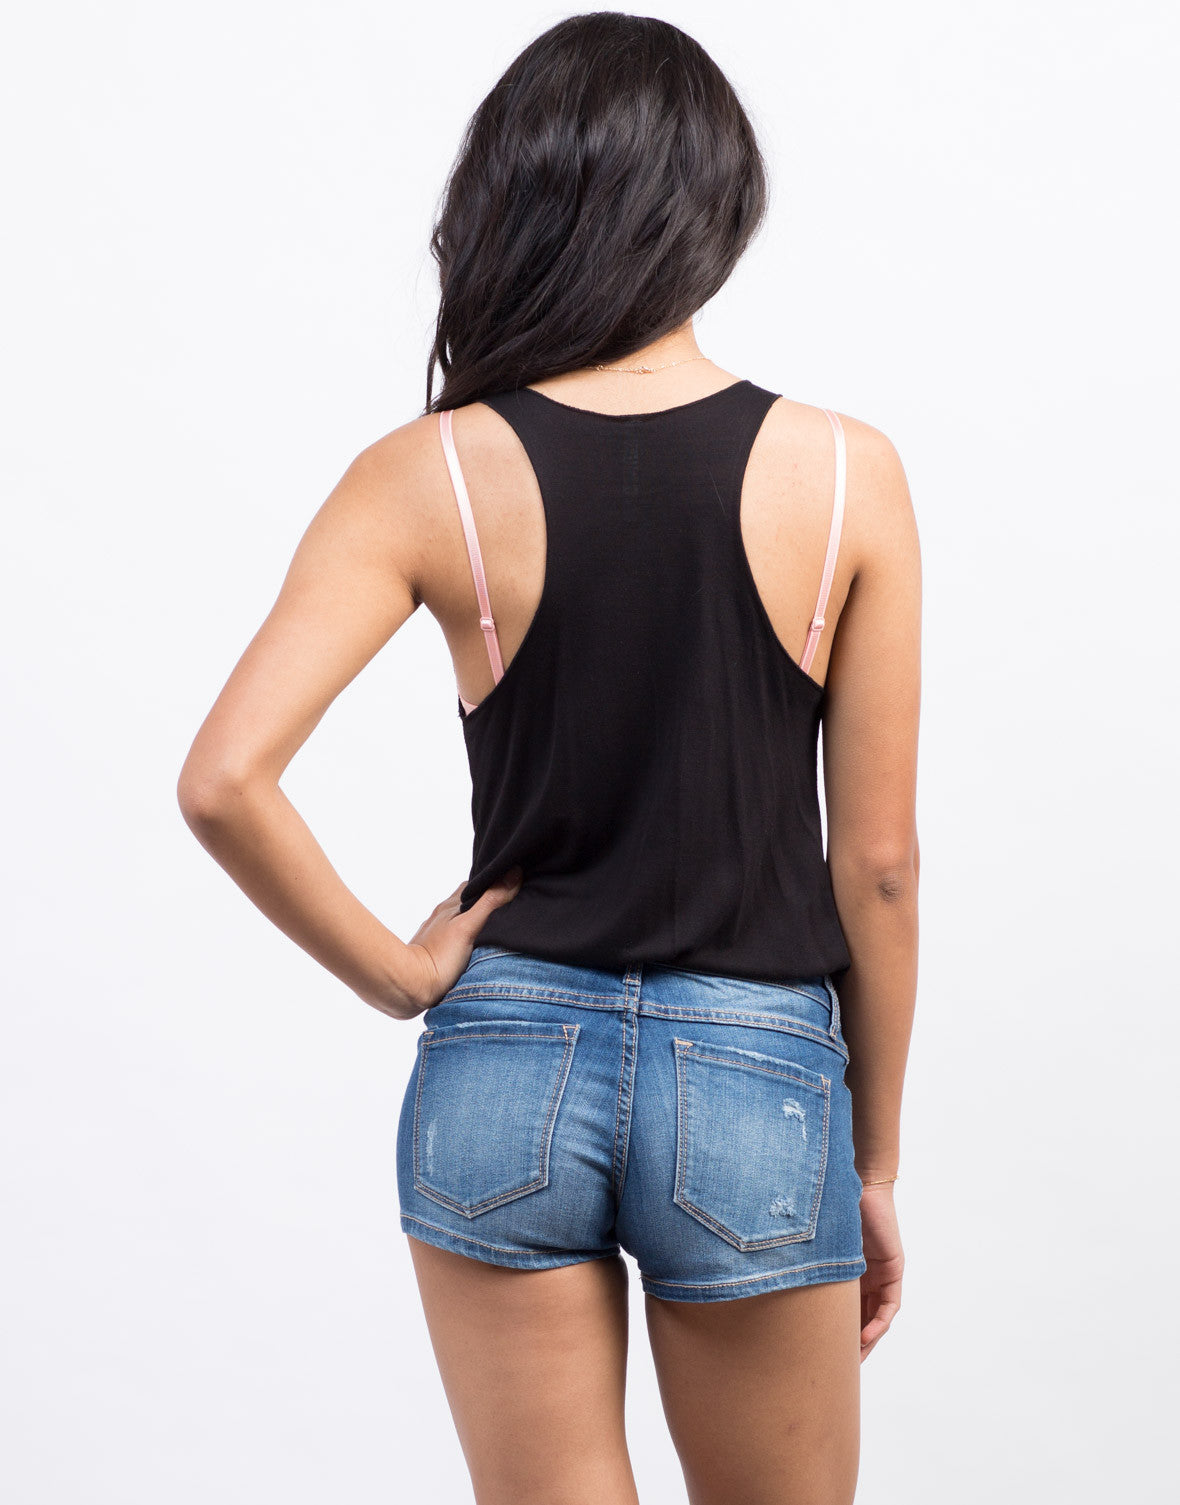 Back View of Faded Wash Denim Shorts